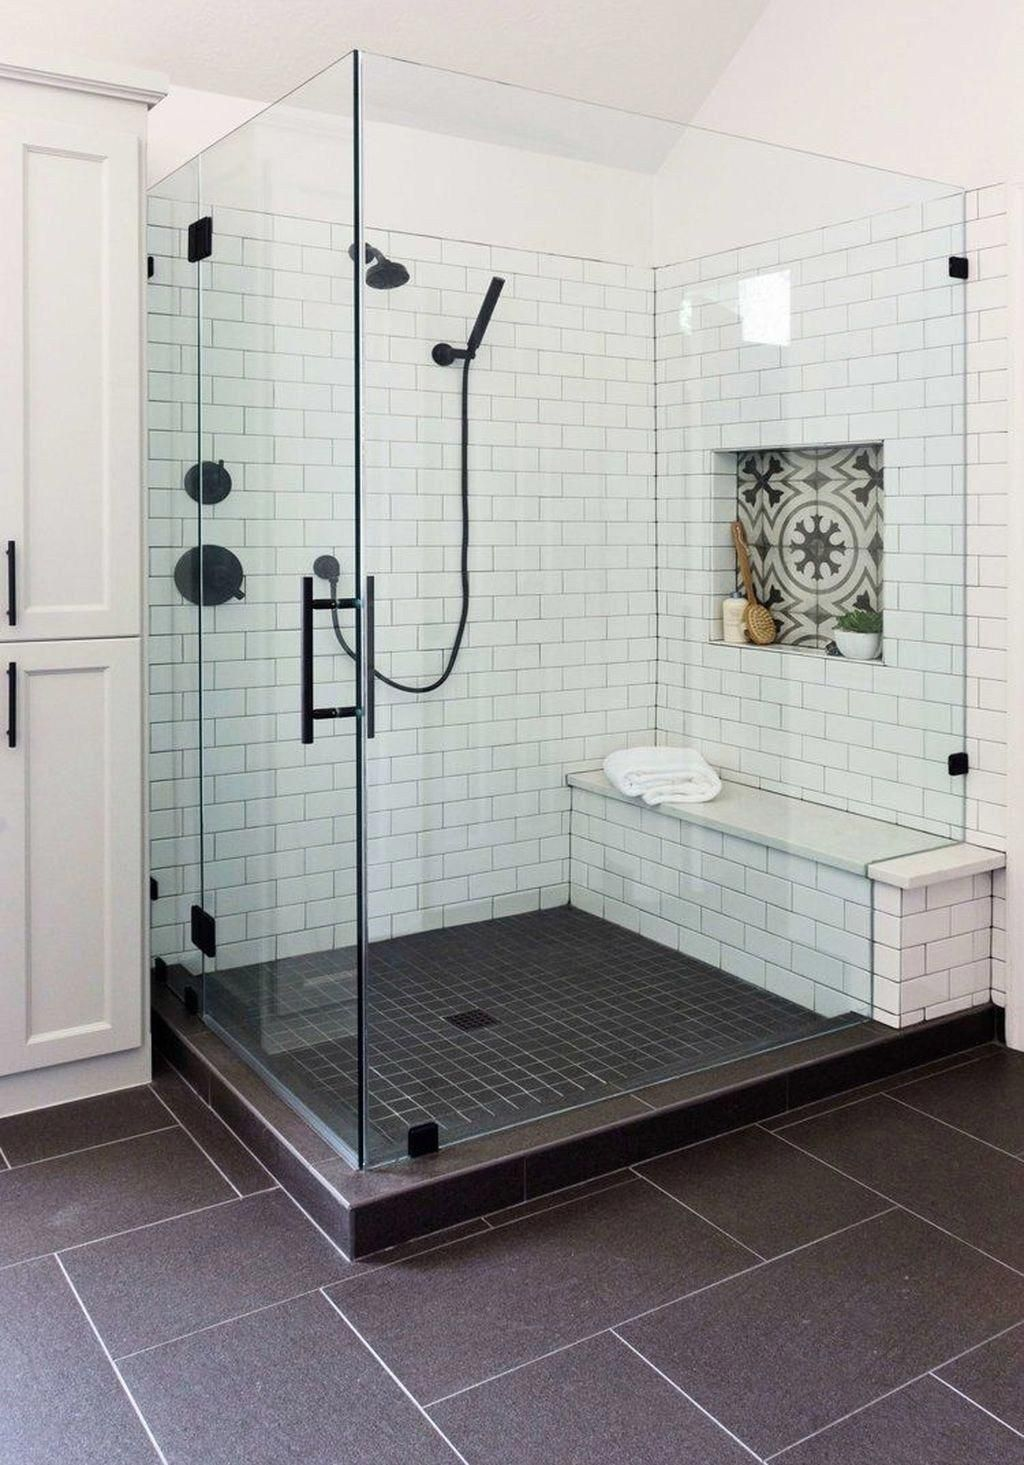 If You Re Just Repainting One Space Of Your House You Can Decide Out Of Hiring Professional Painters In 2020 Bathroom Remodel Master Bathrooms Remodel Shower Remodel